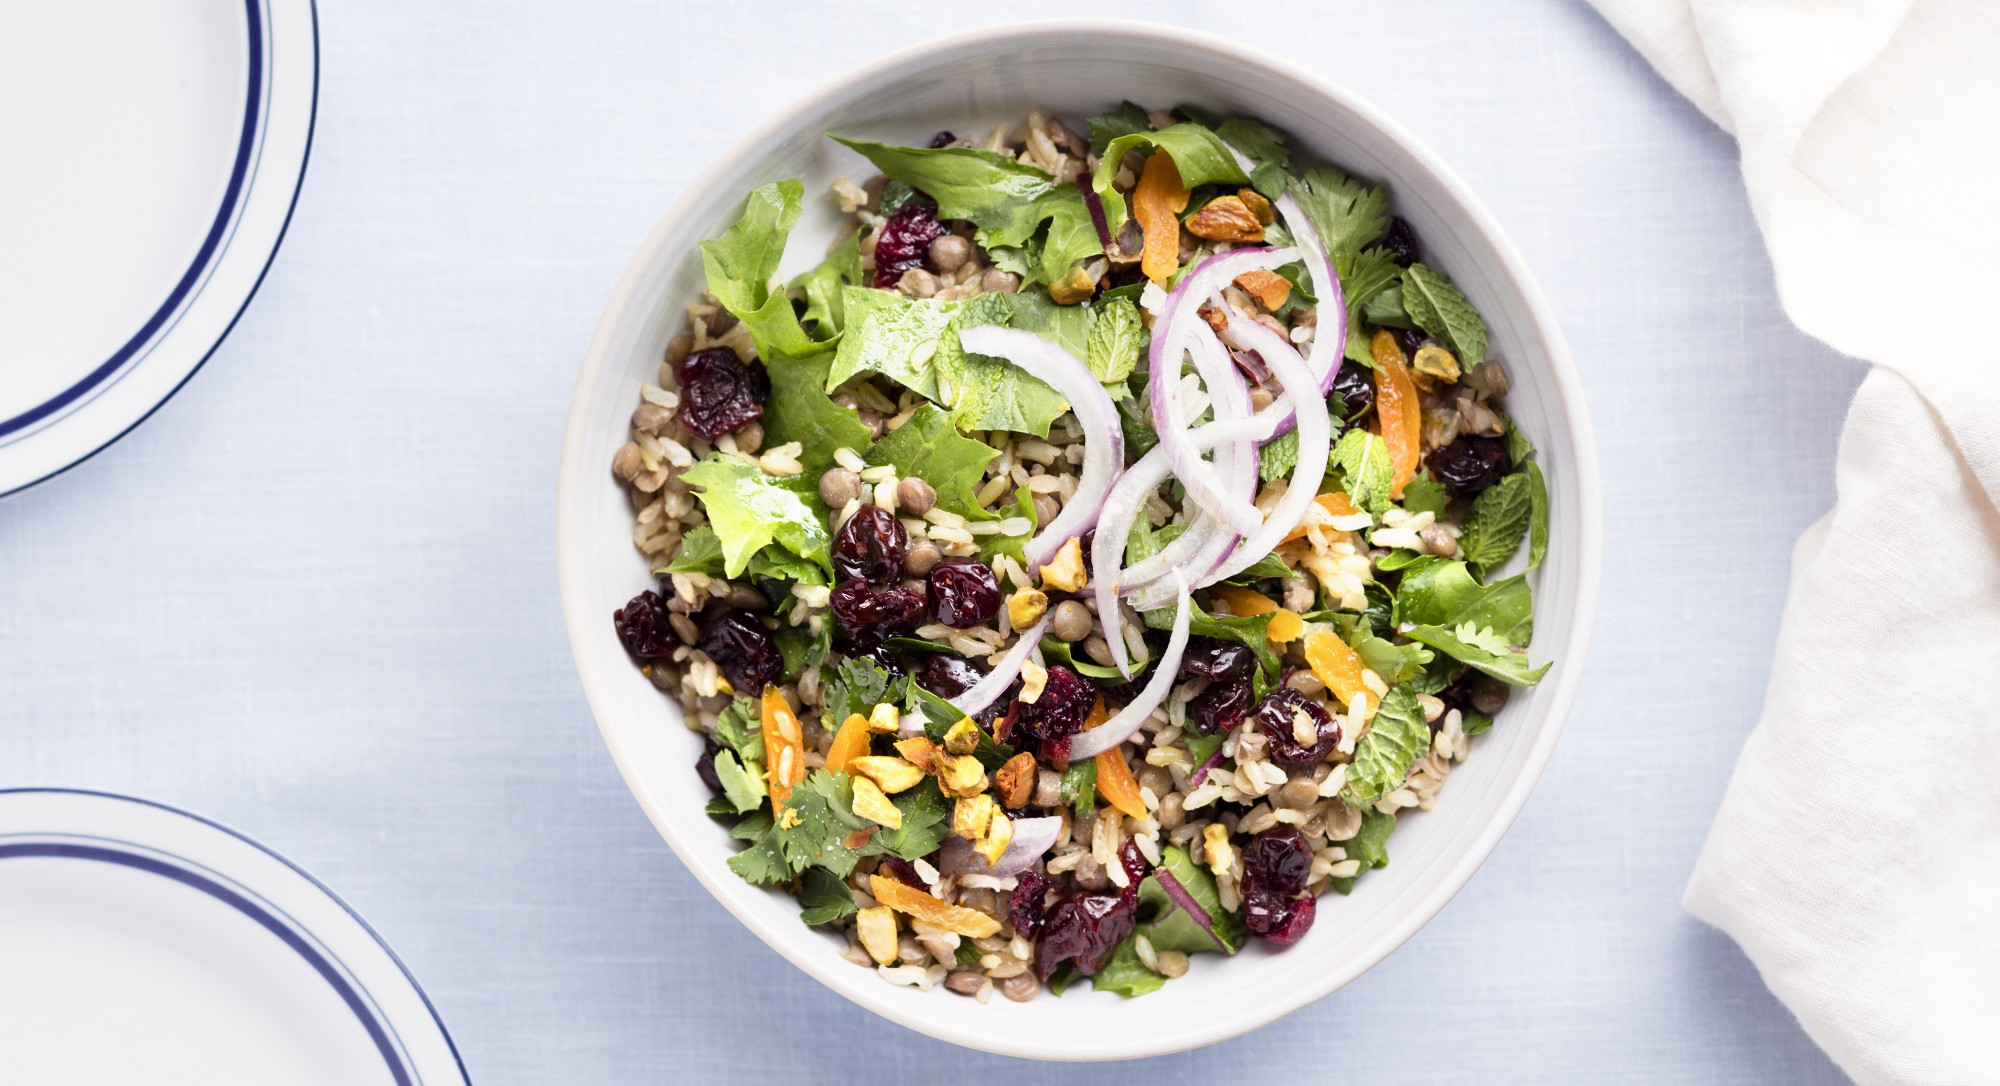 Brown Rice and Lentil Salad Recipe